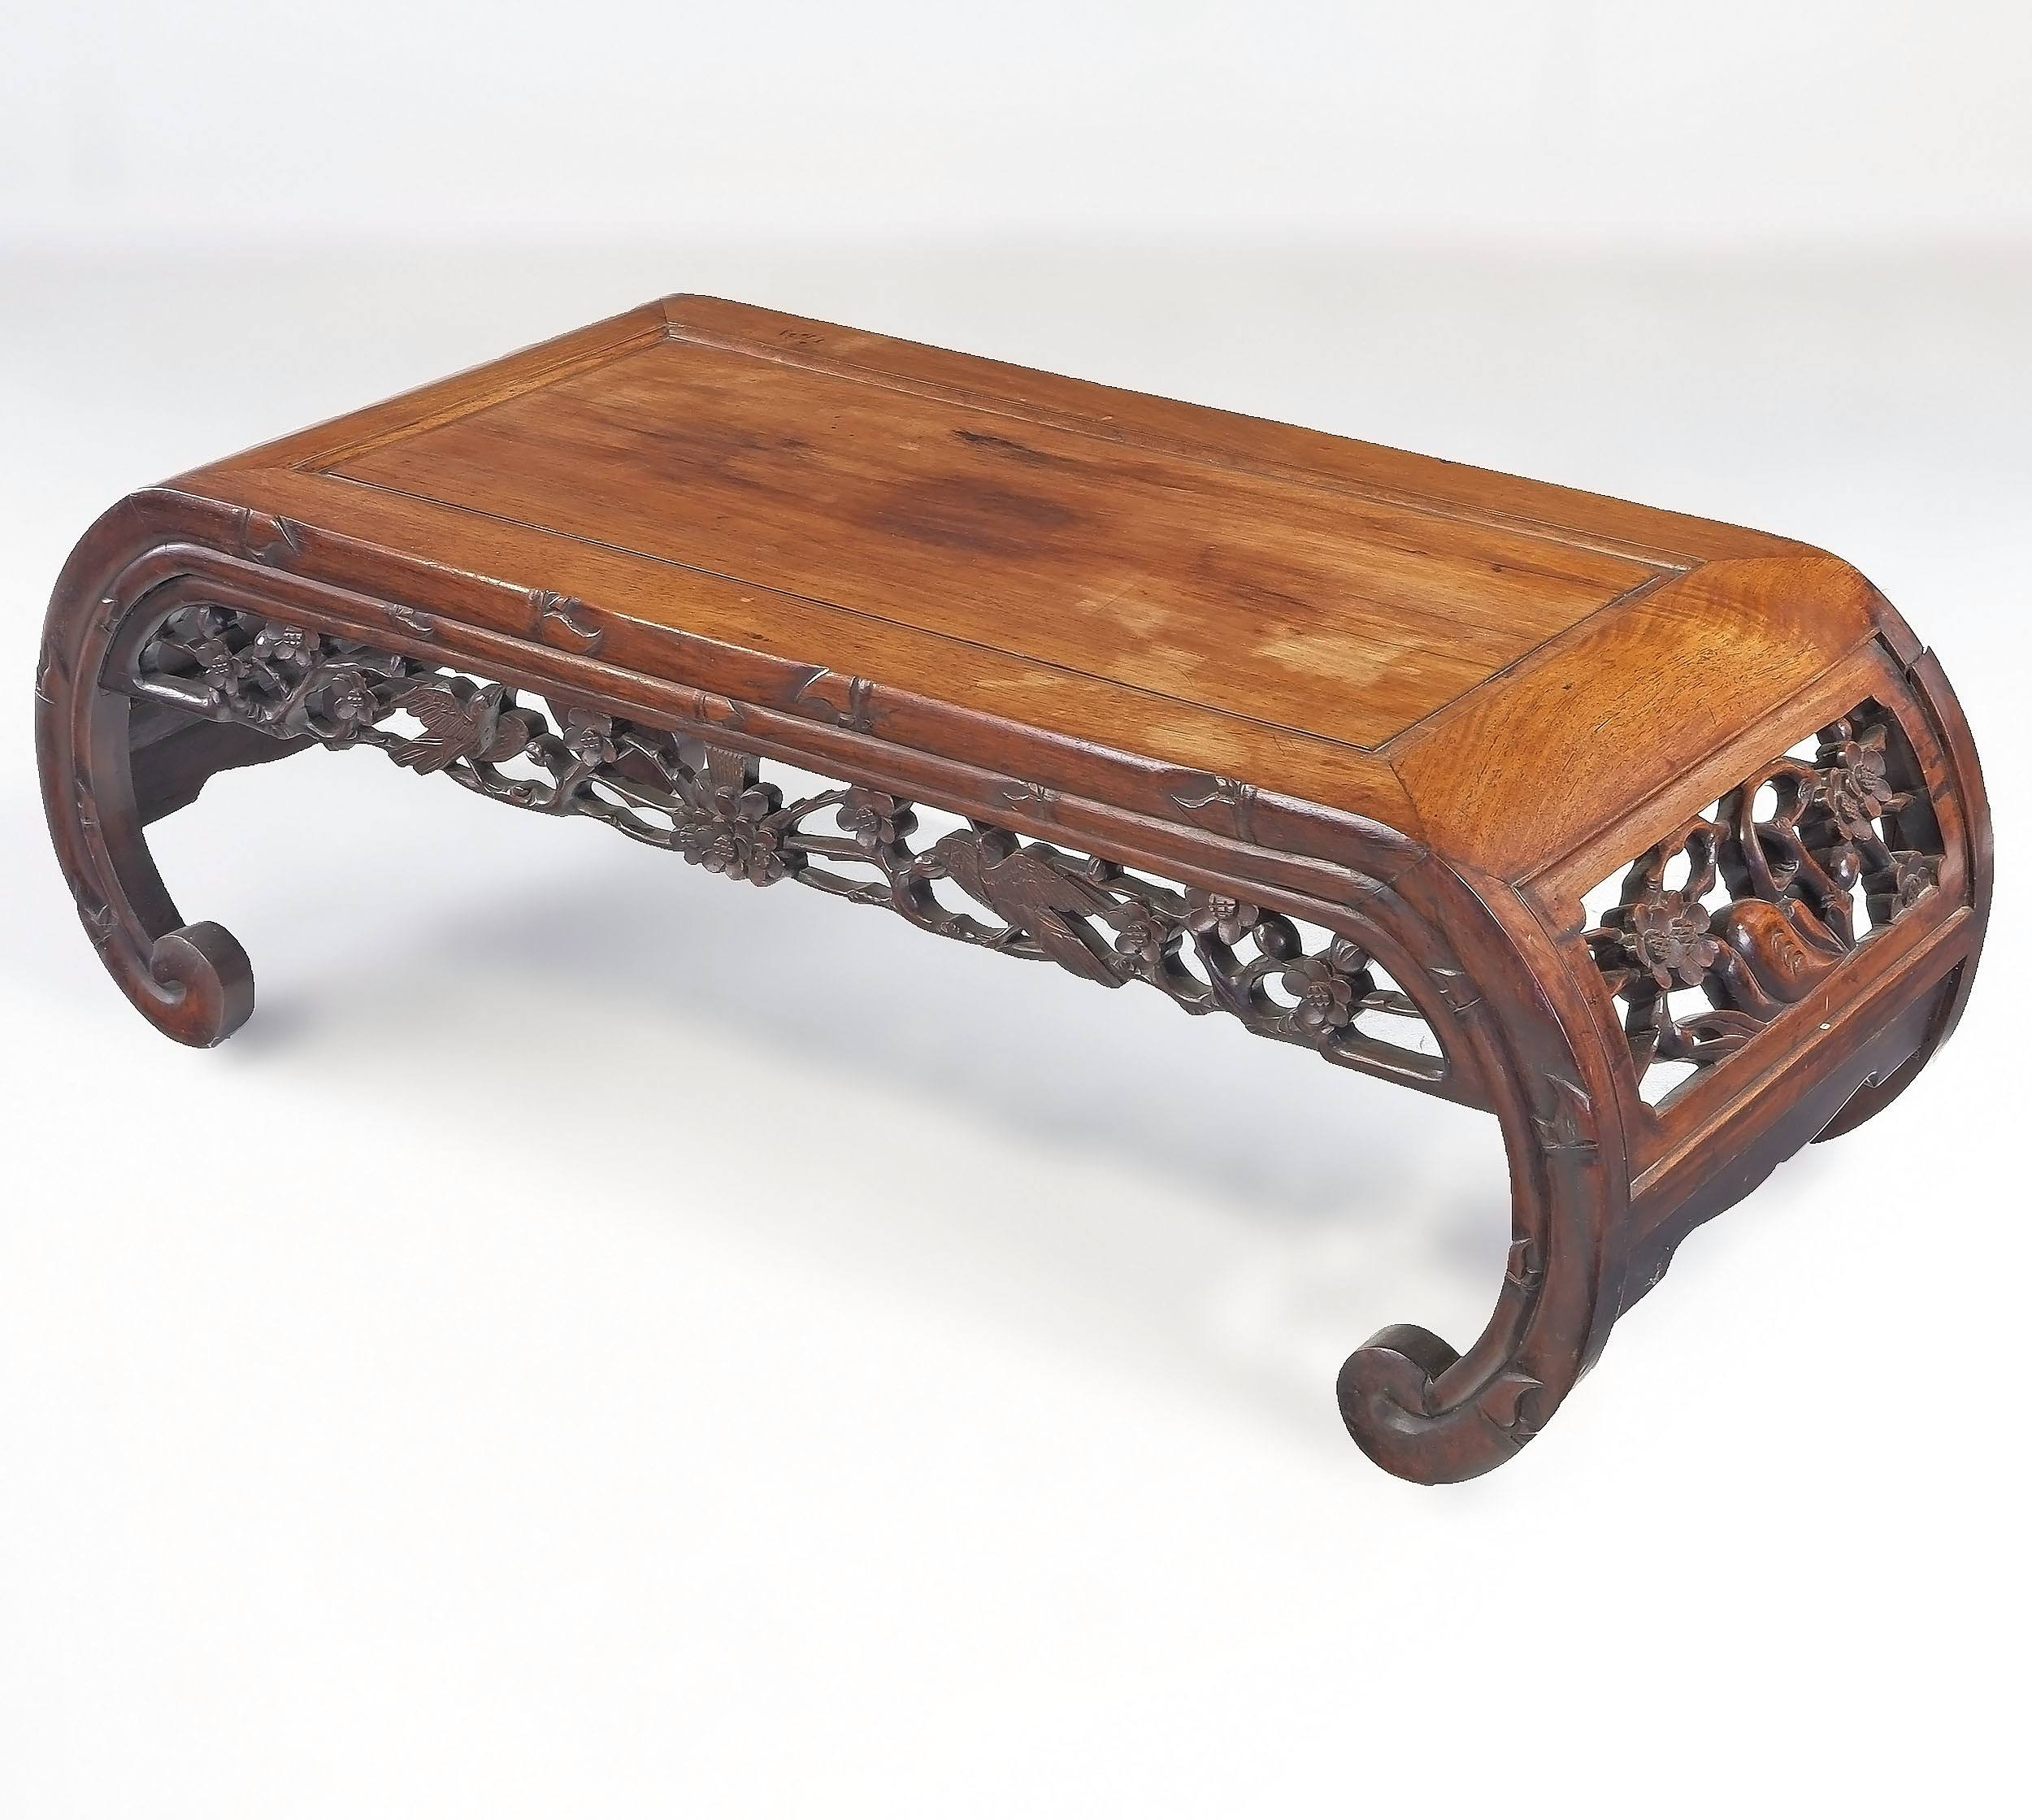 'Chinese Carved and Pierced Rosewood Kang Table, Early to Mid 20th Century'